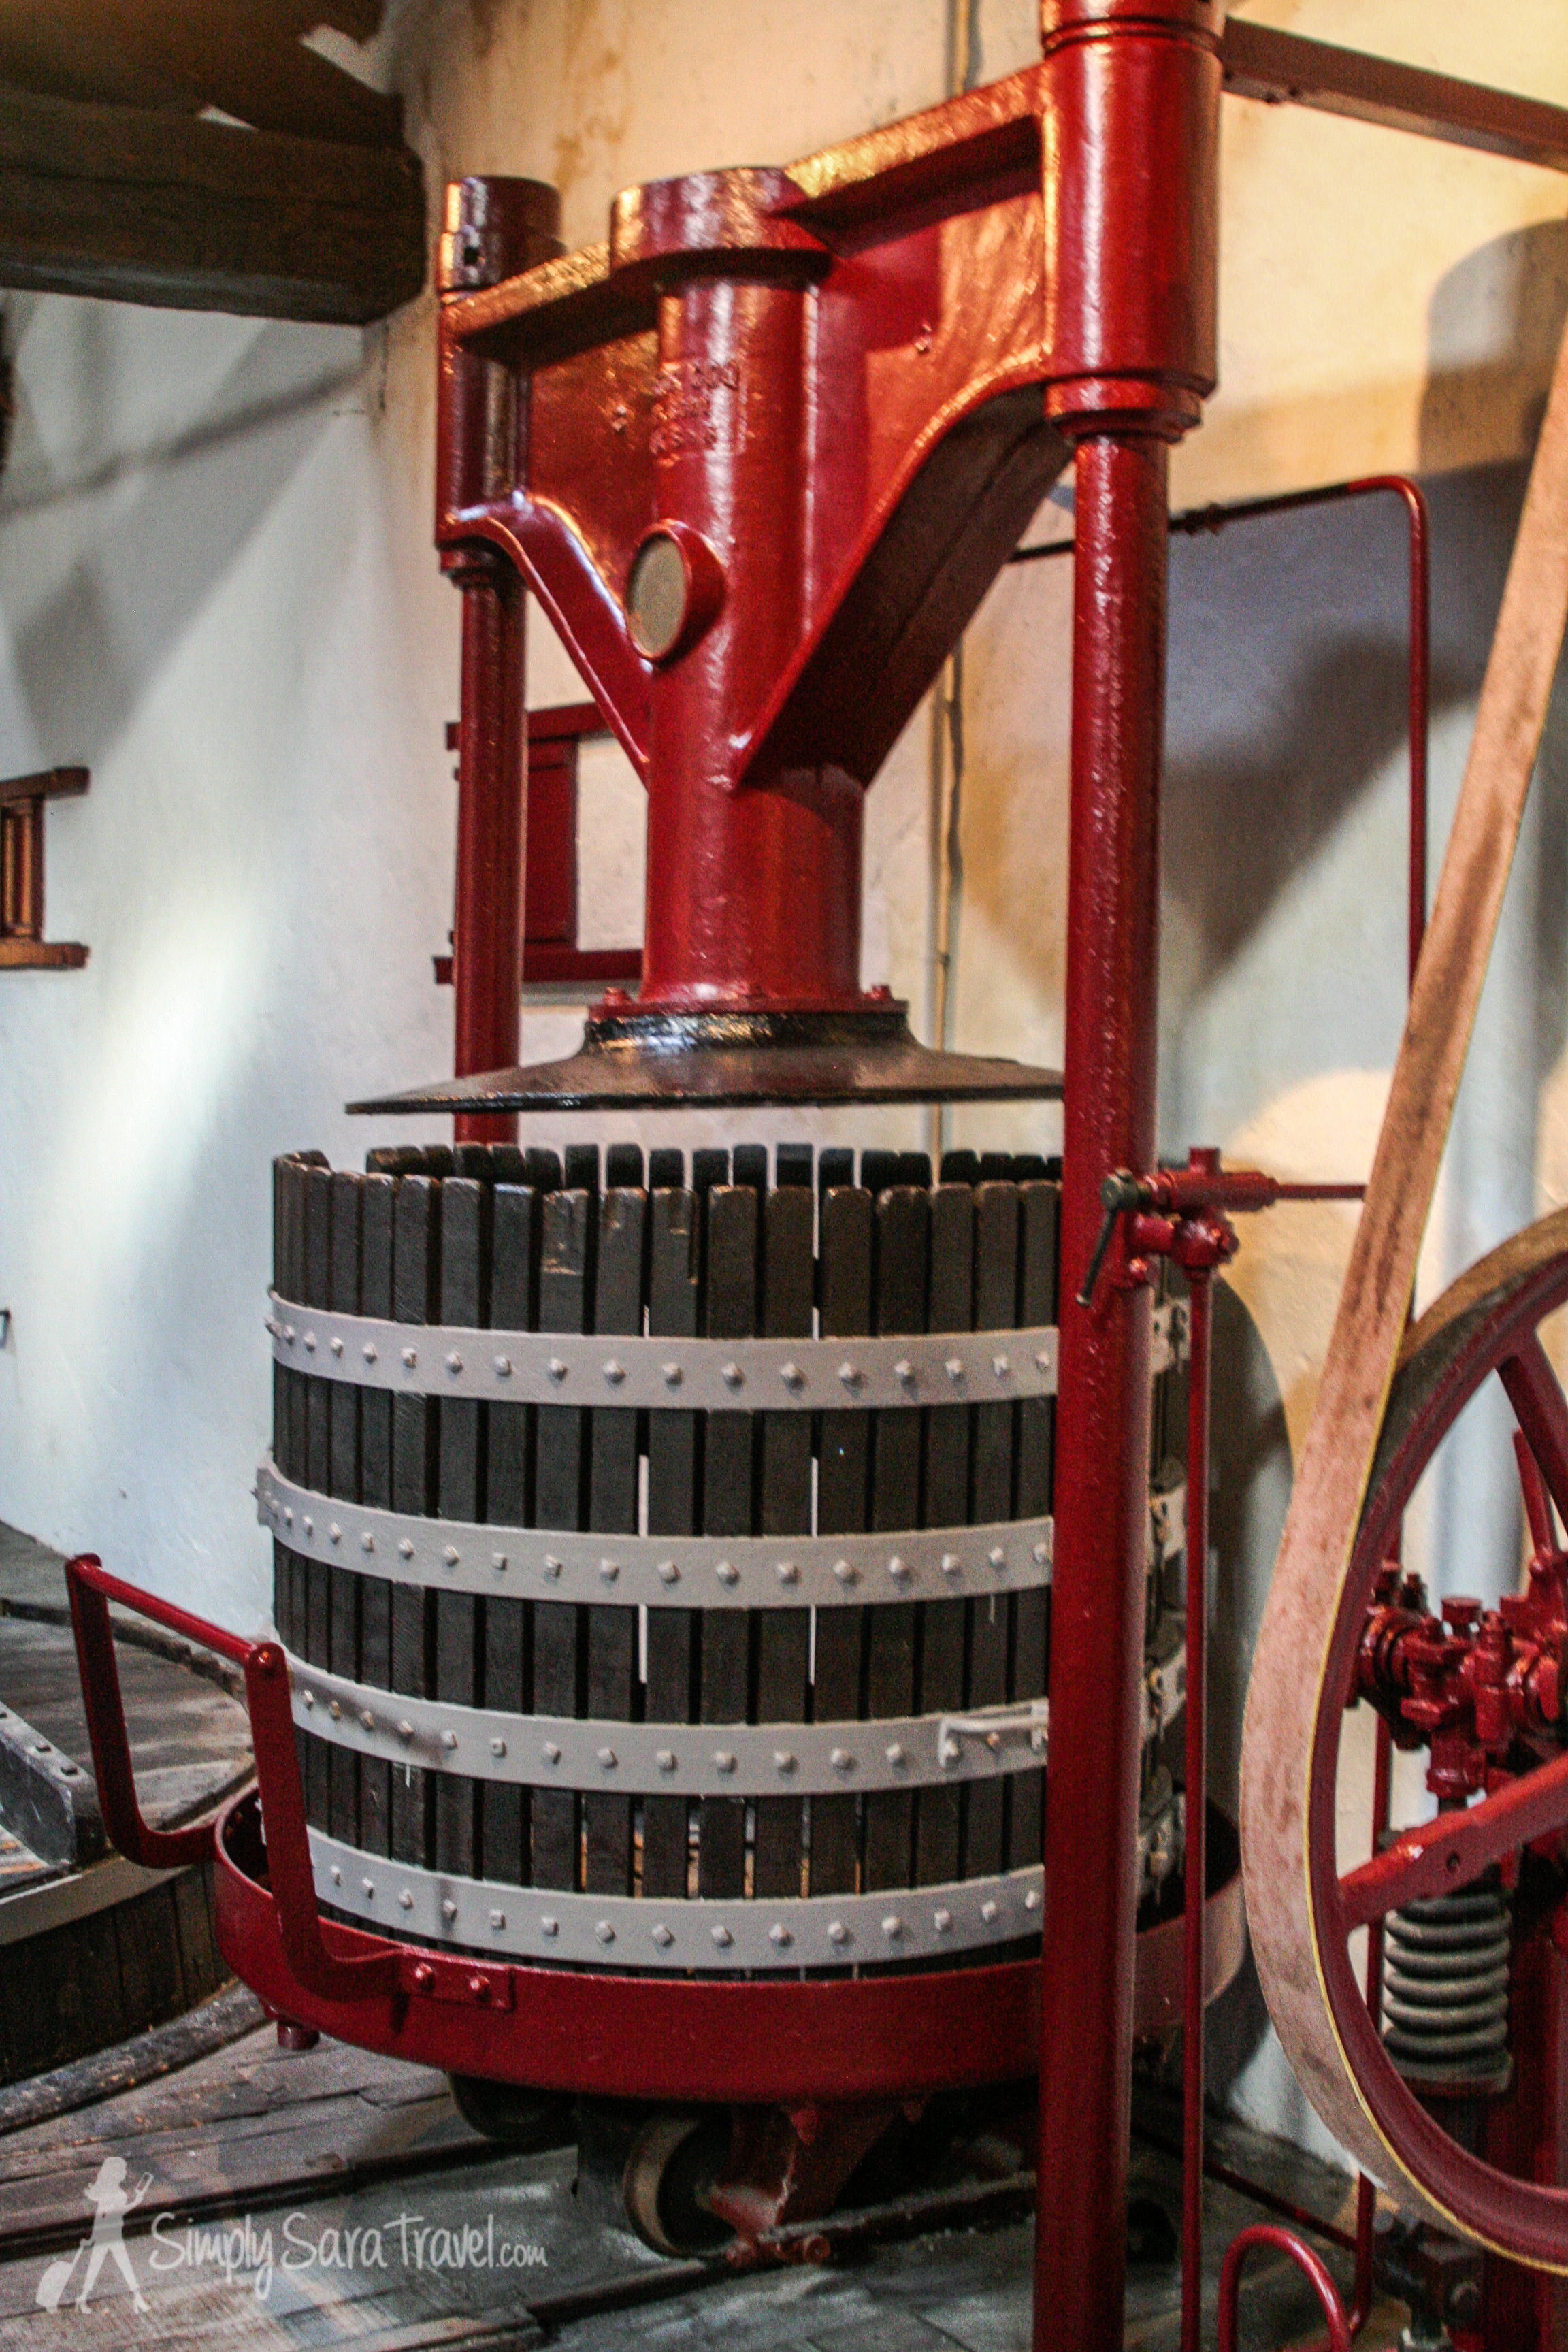 Check out that old wine press!